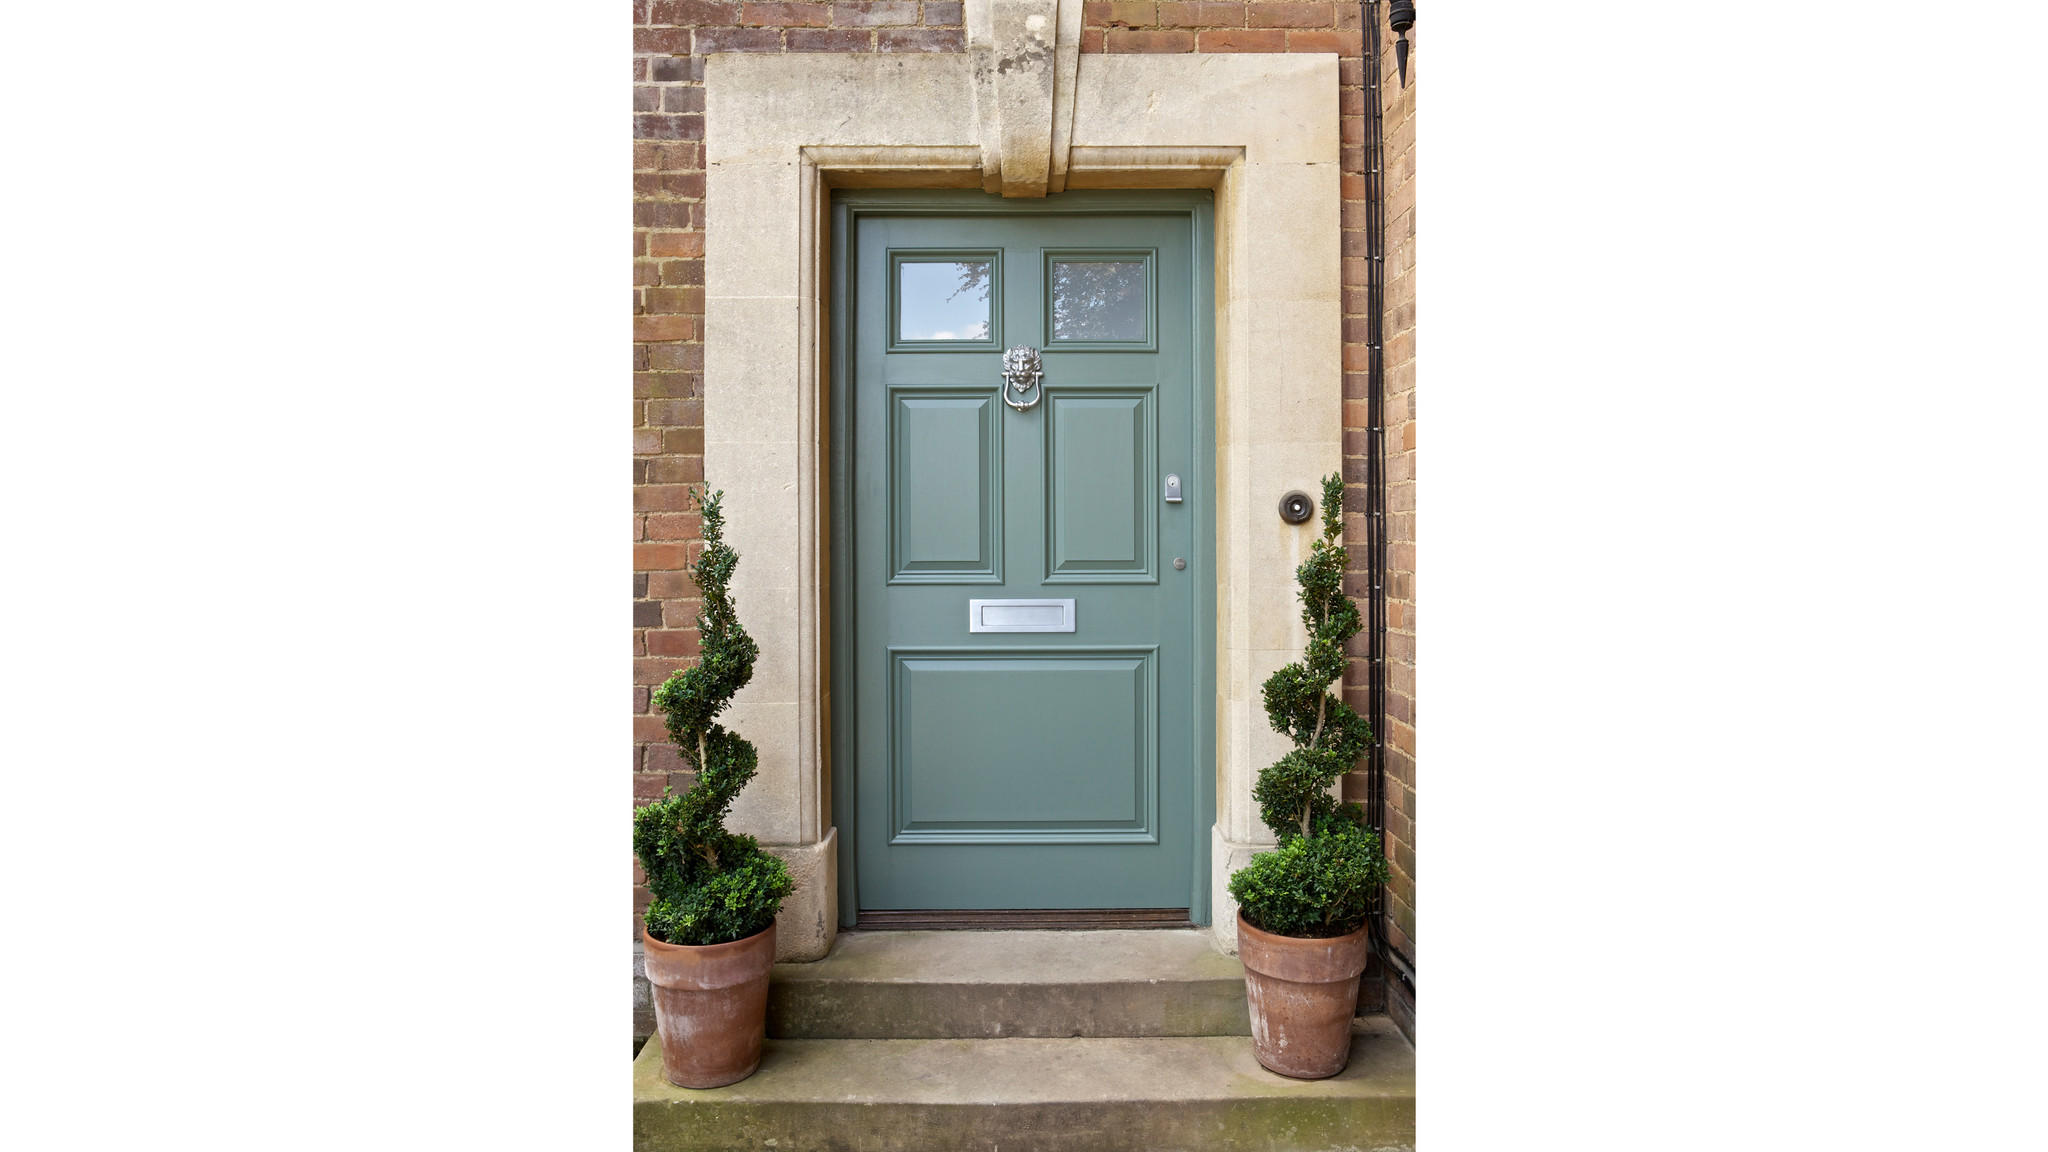 Farrow & Ball paint Card Room Green No. 79 Exterior Eggshell.